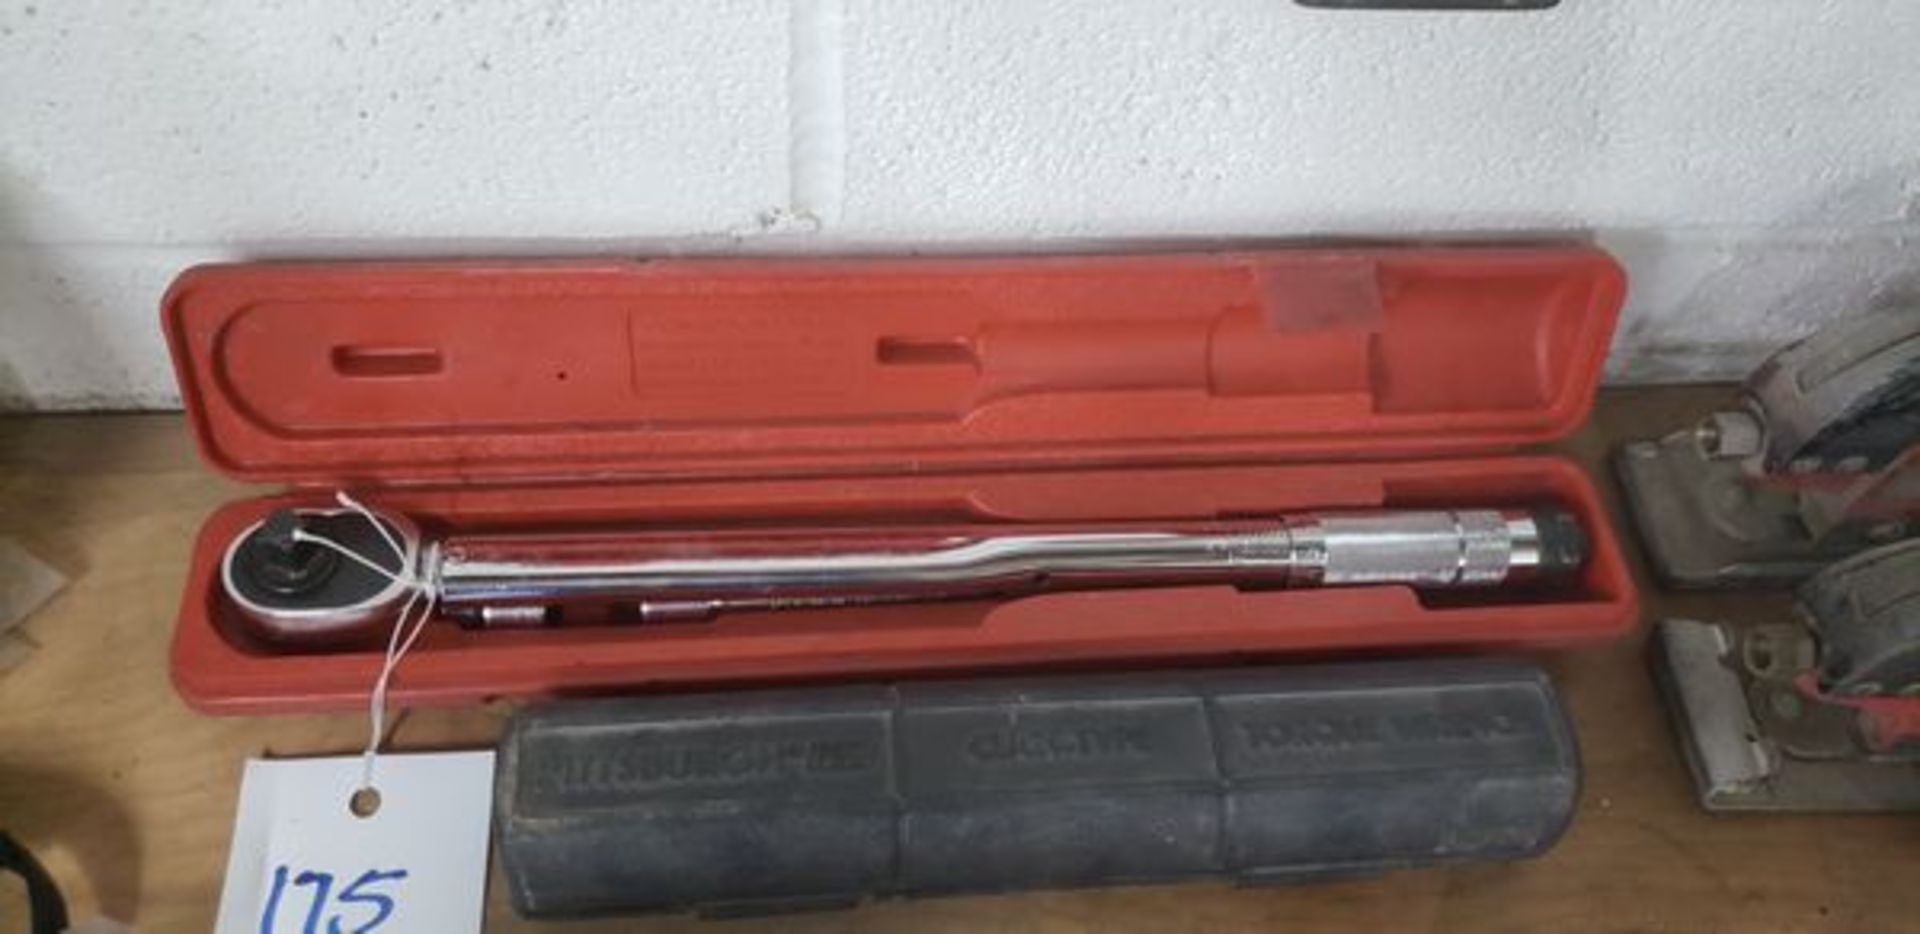 TORQUE WRENCHES - Image 2 of 3